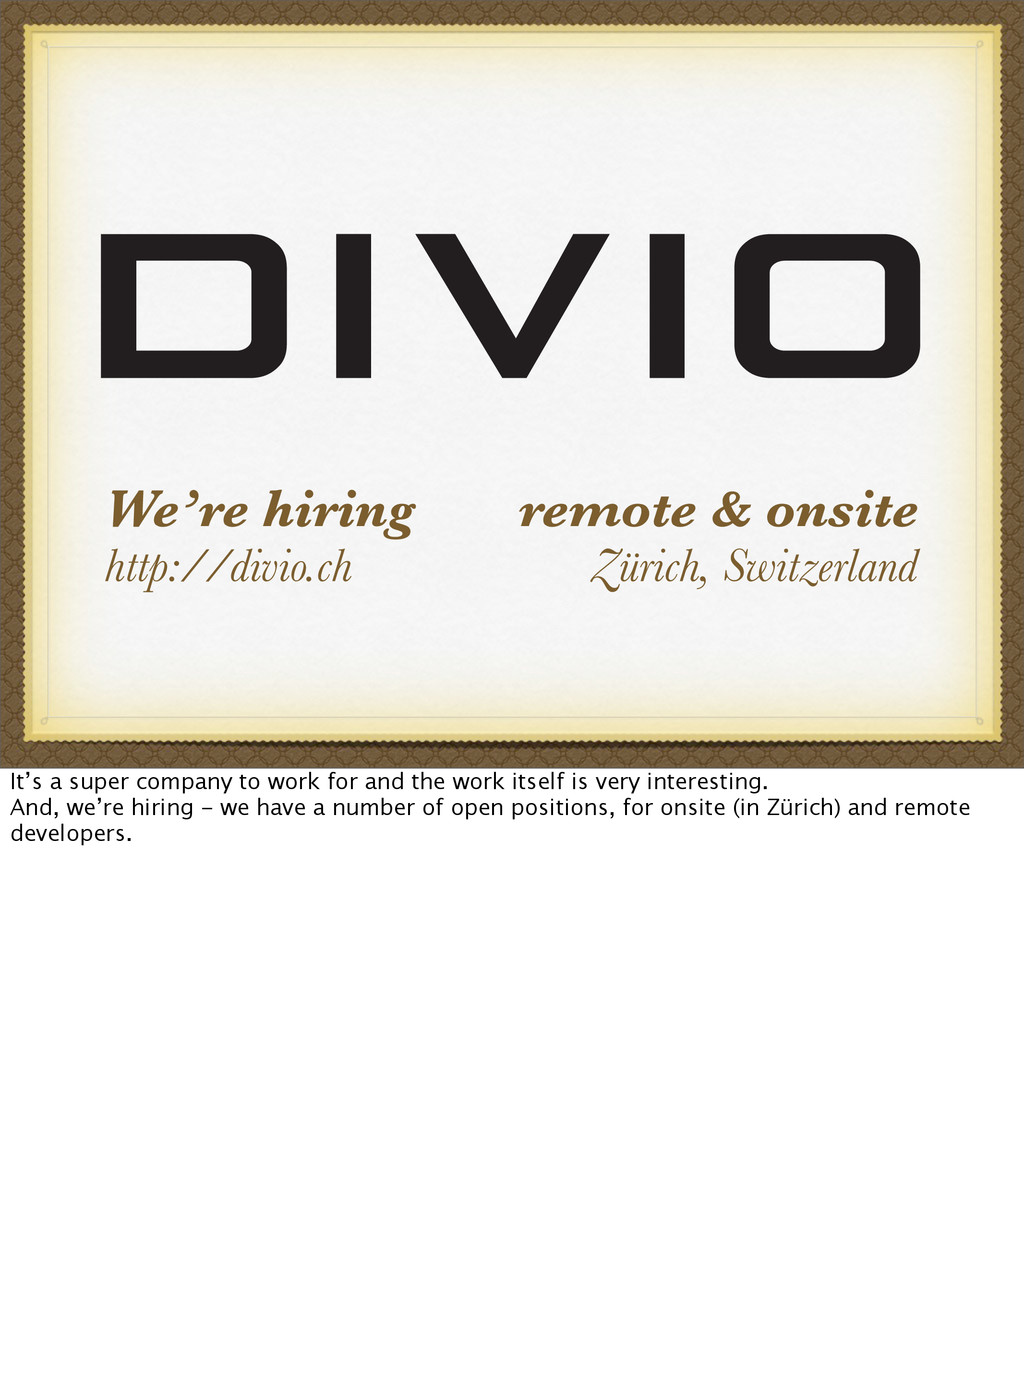 We're hiring http://divio.ch remote & onsite Zü...